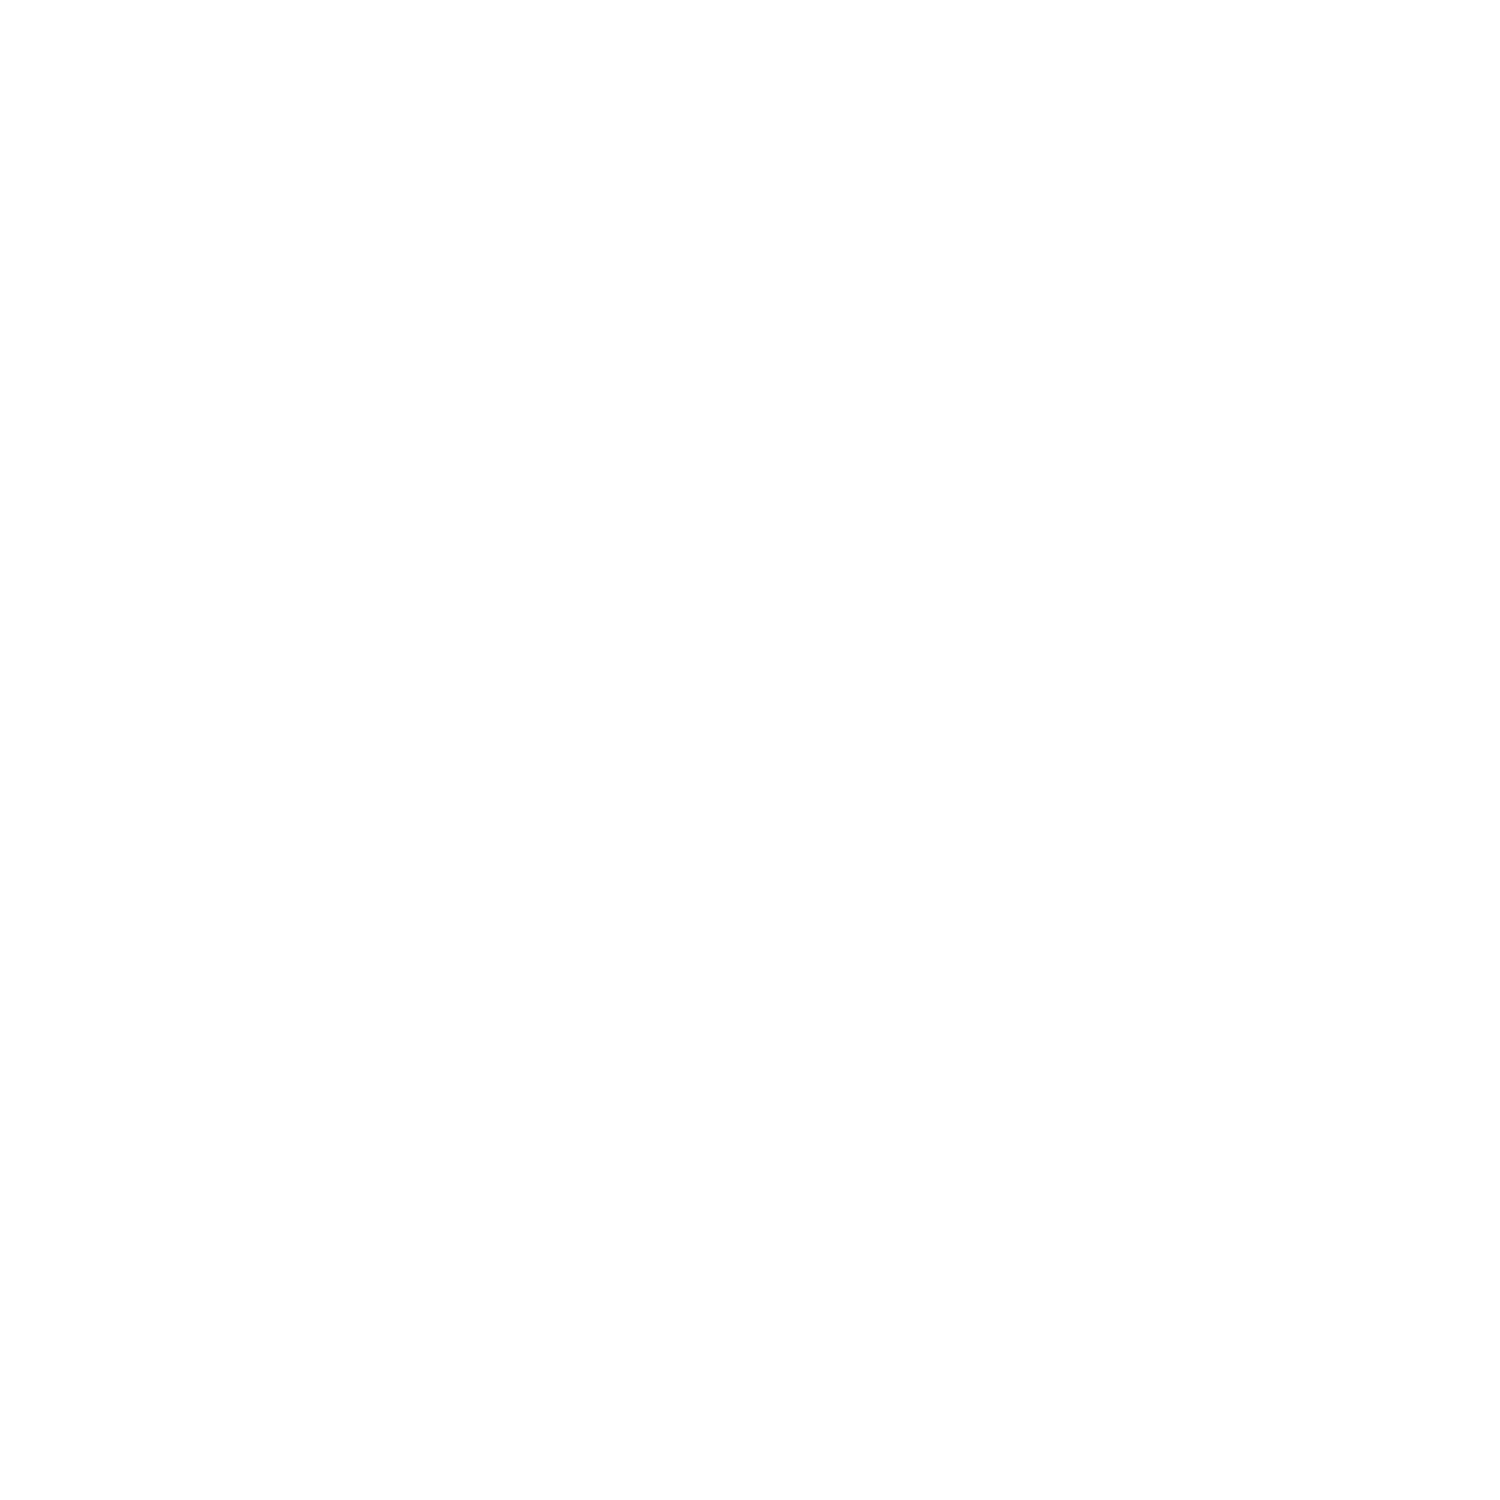 Till information om Leisure Cycling.